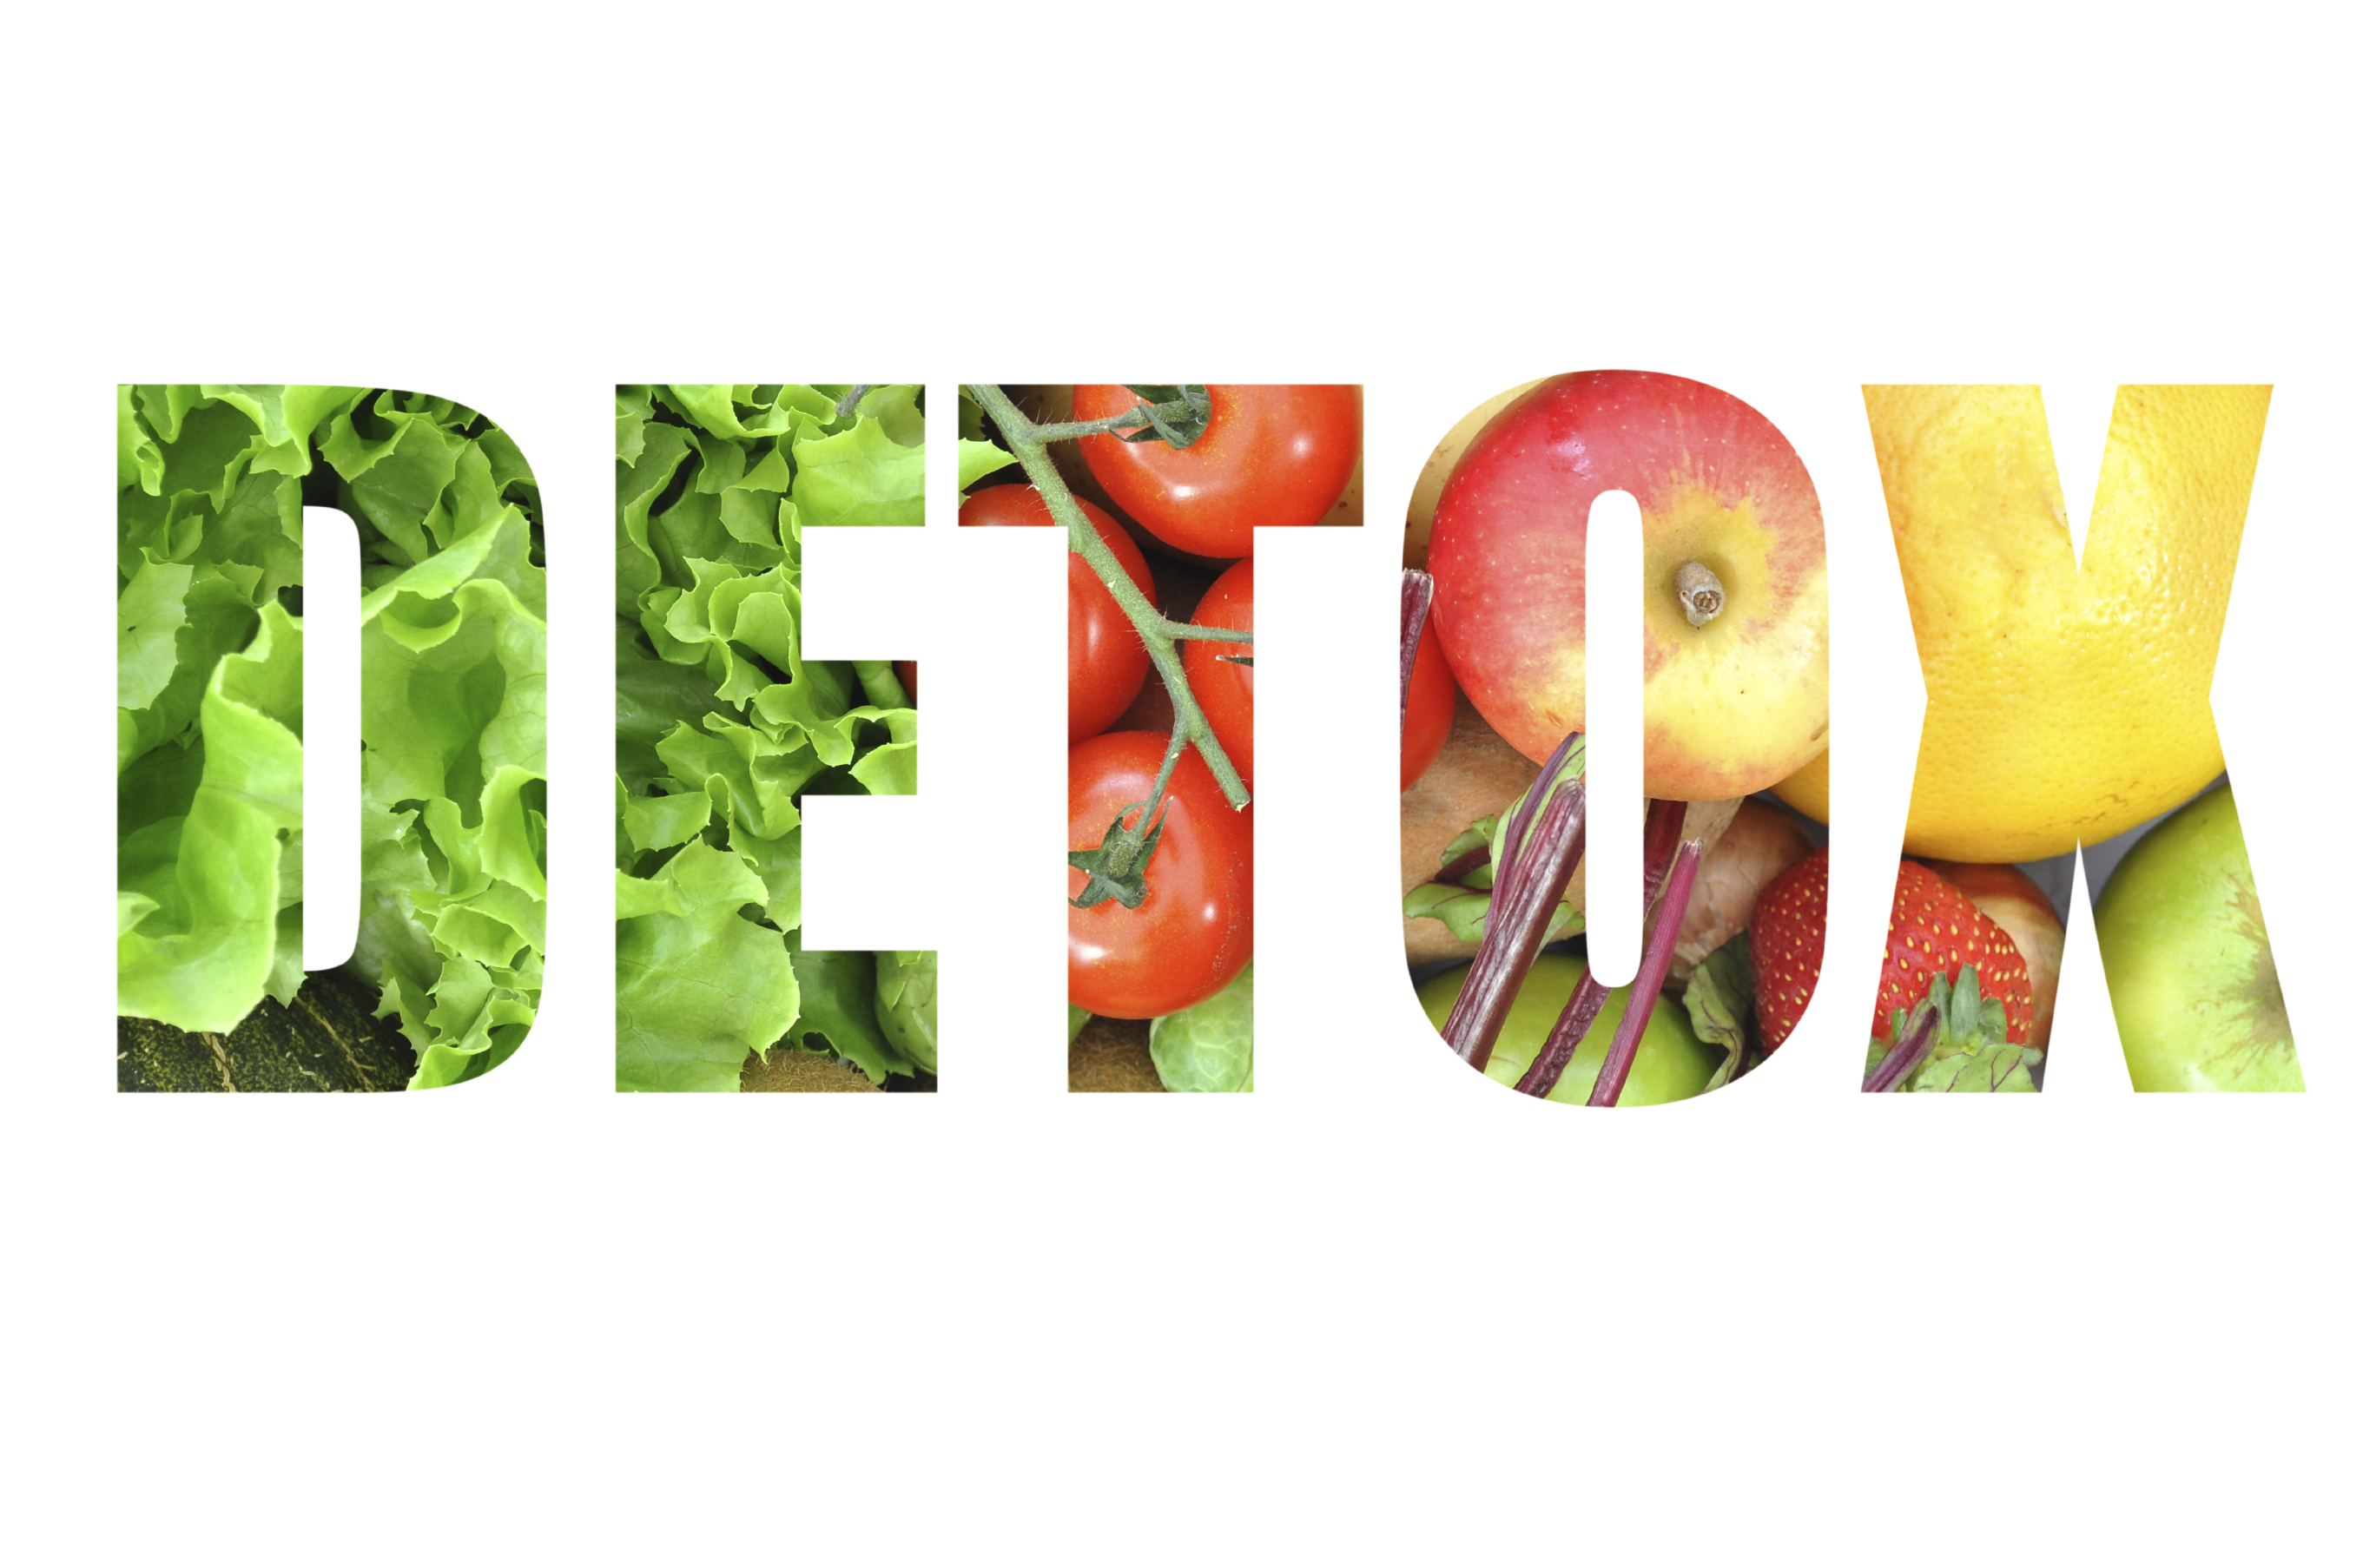 Are You Ready For A Spring Detox? Here's 7 Simple Ways to Improve Your Health